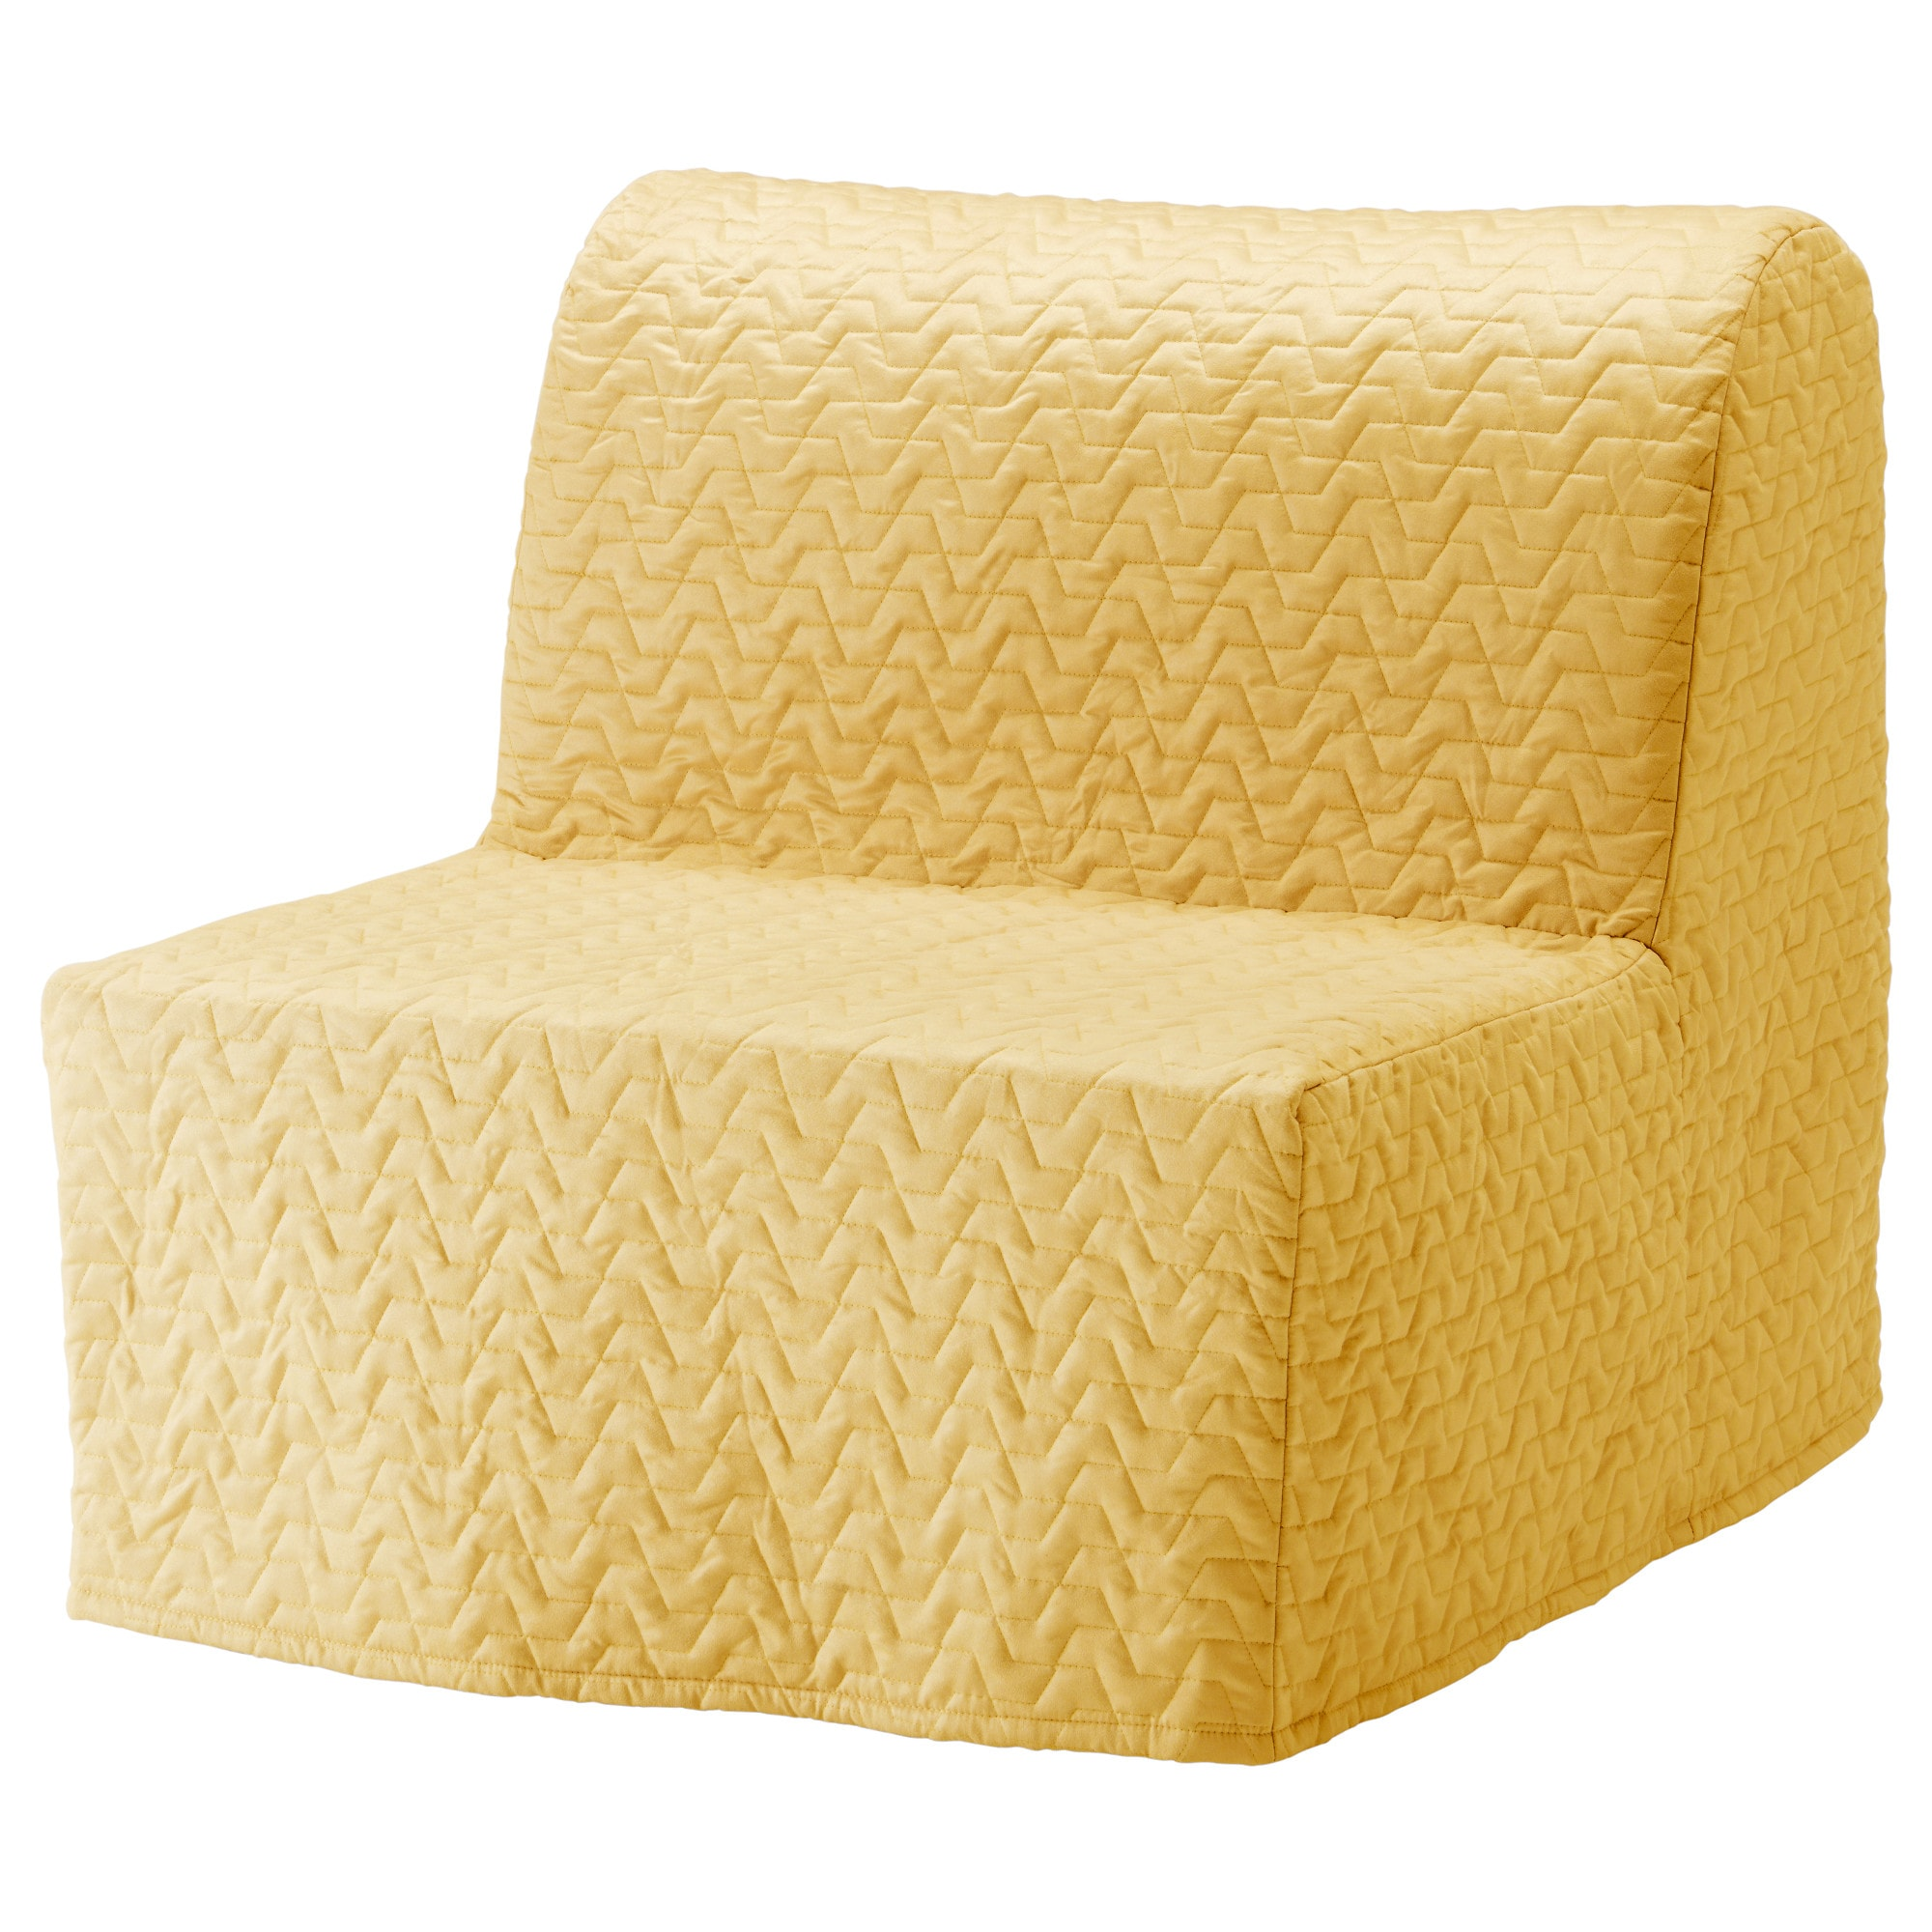 Bettsessel Lycksele Chair Bed Lycksele LÖvÅs Vallarum Yellow